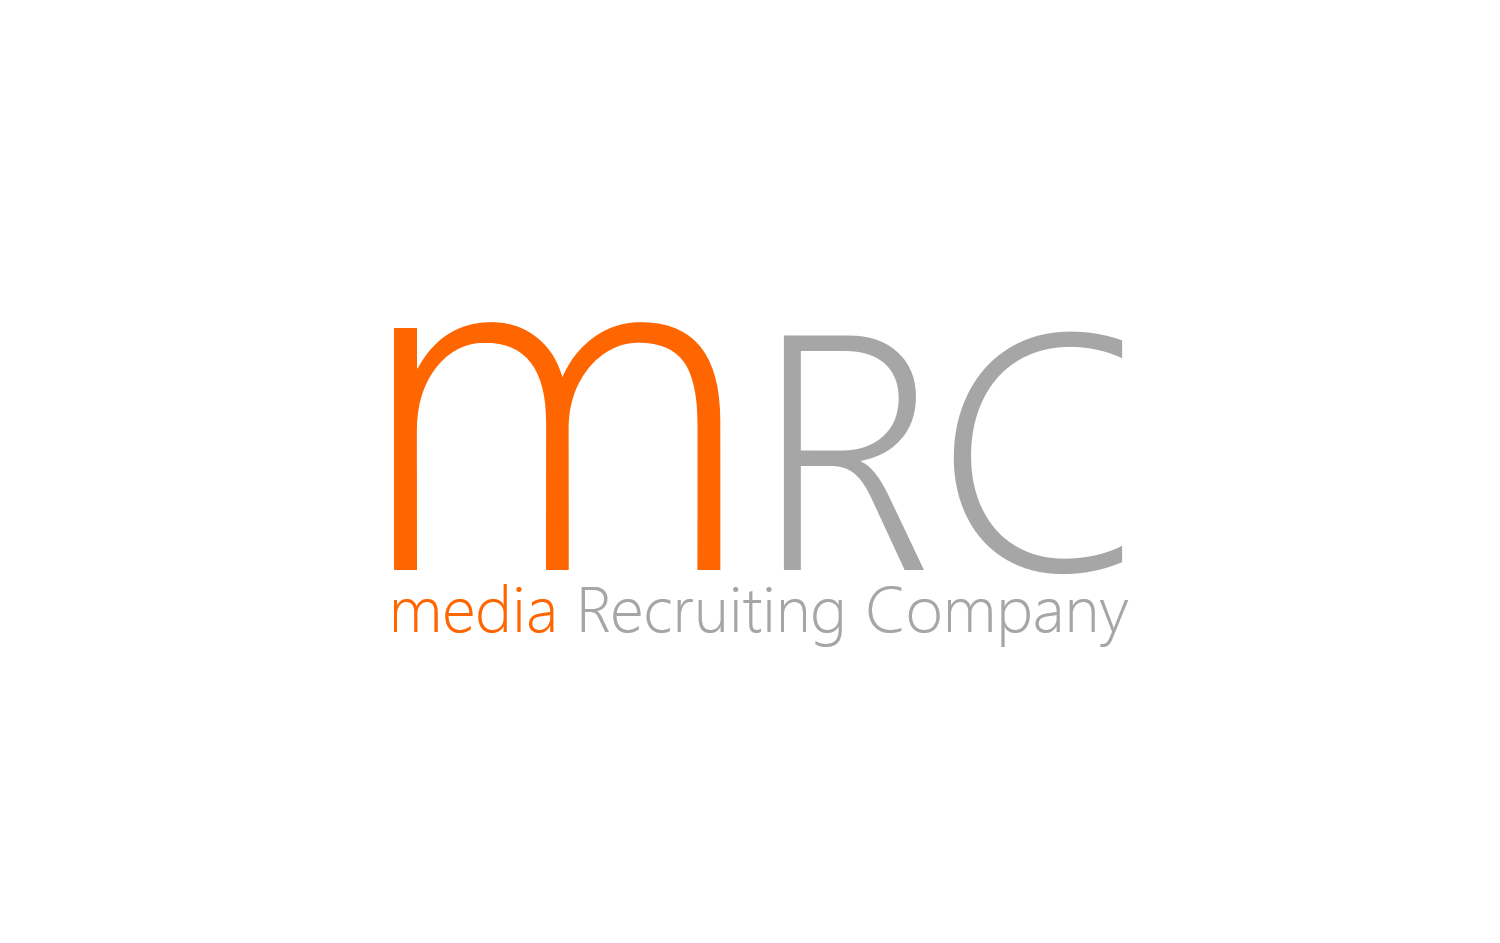 Media Recruiting Company